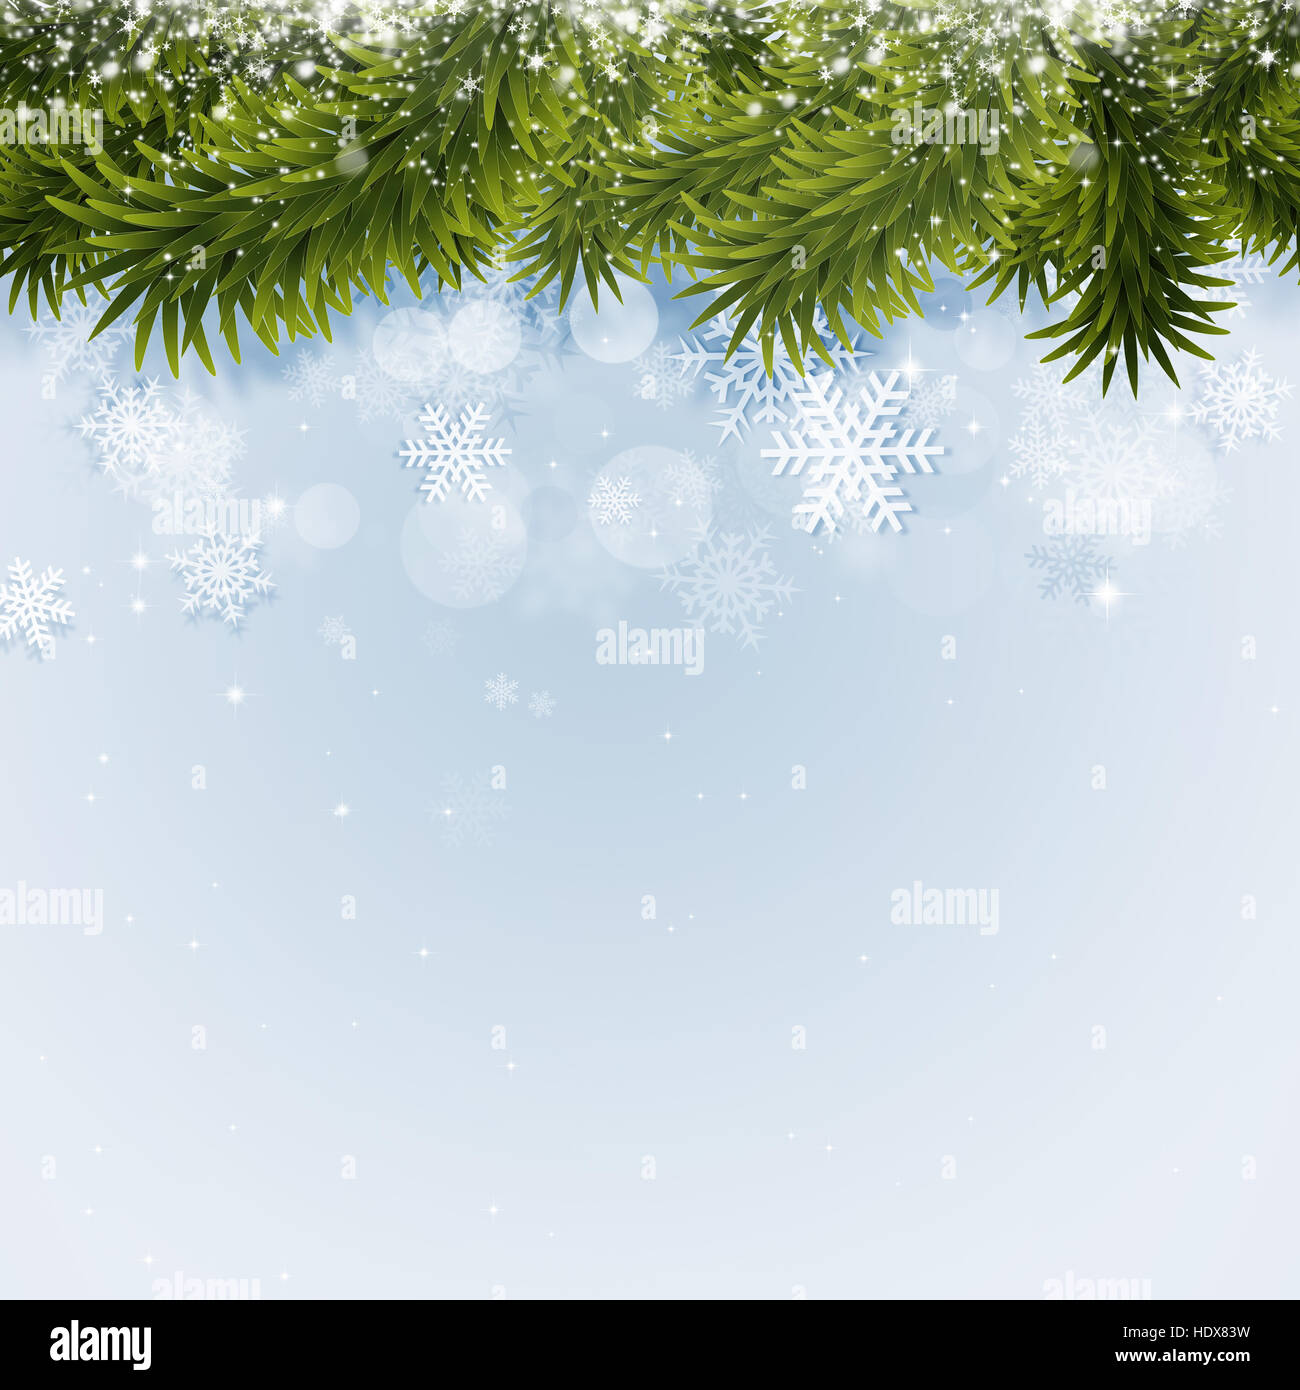 winter holiday background for christmas and new year cards - Stock Image